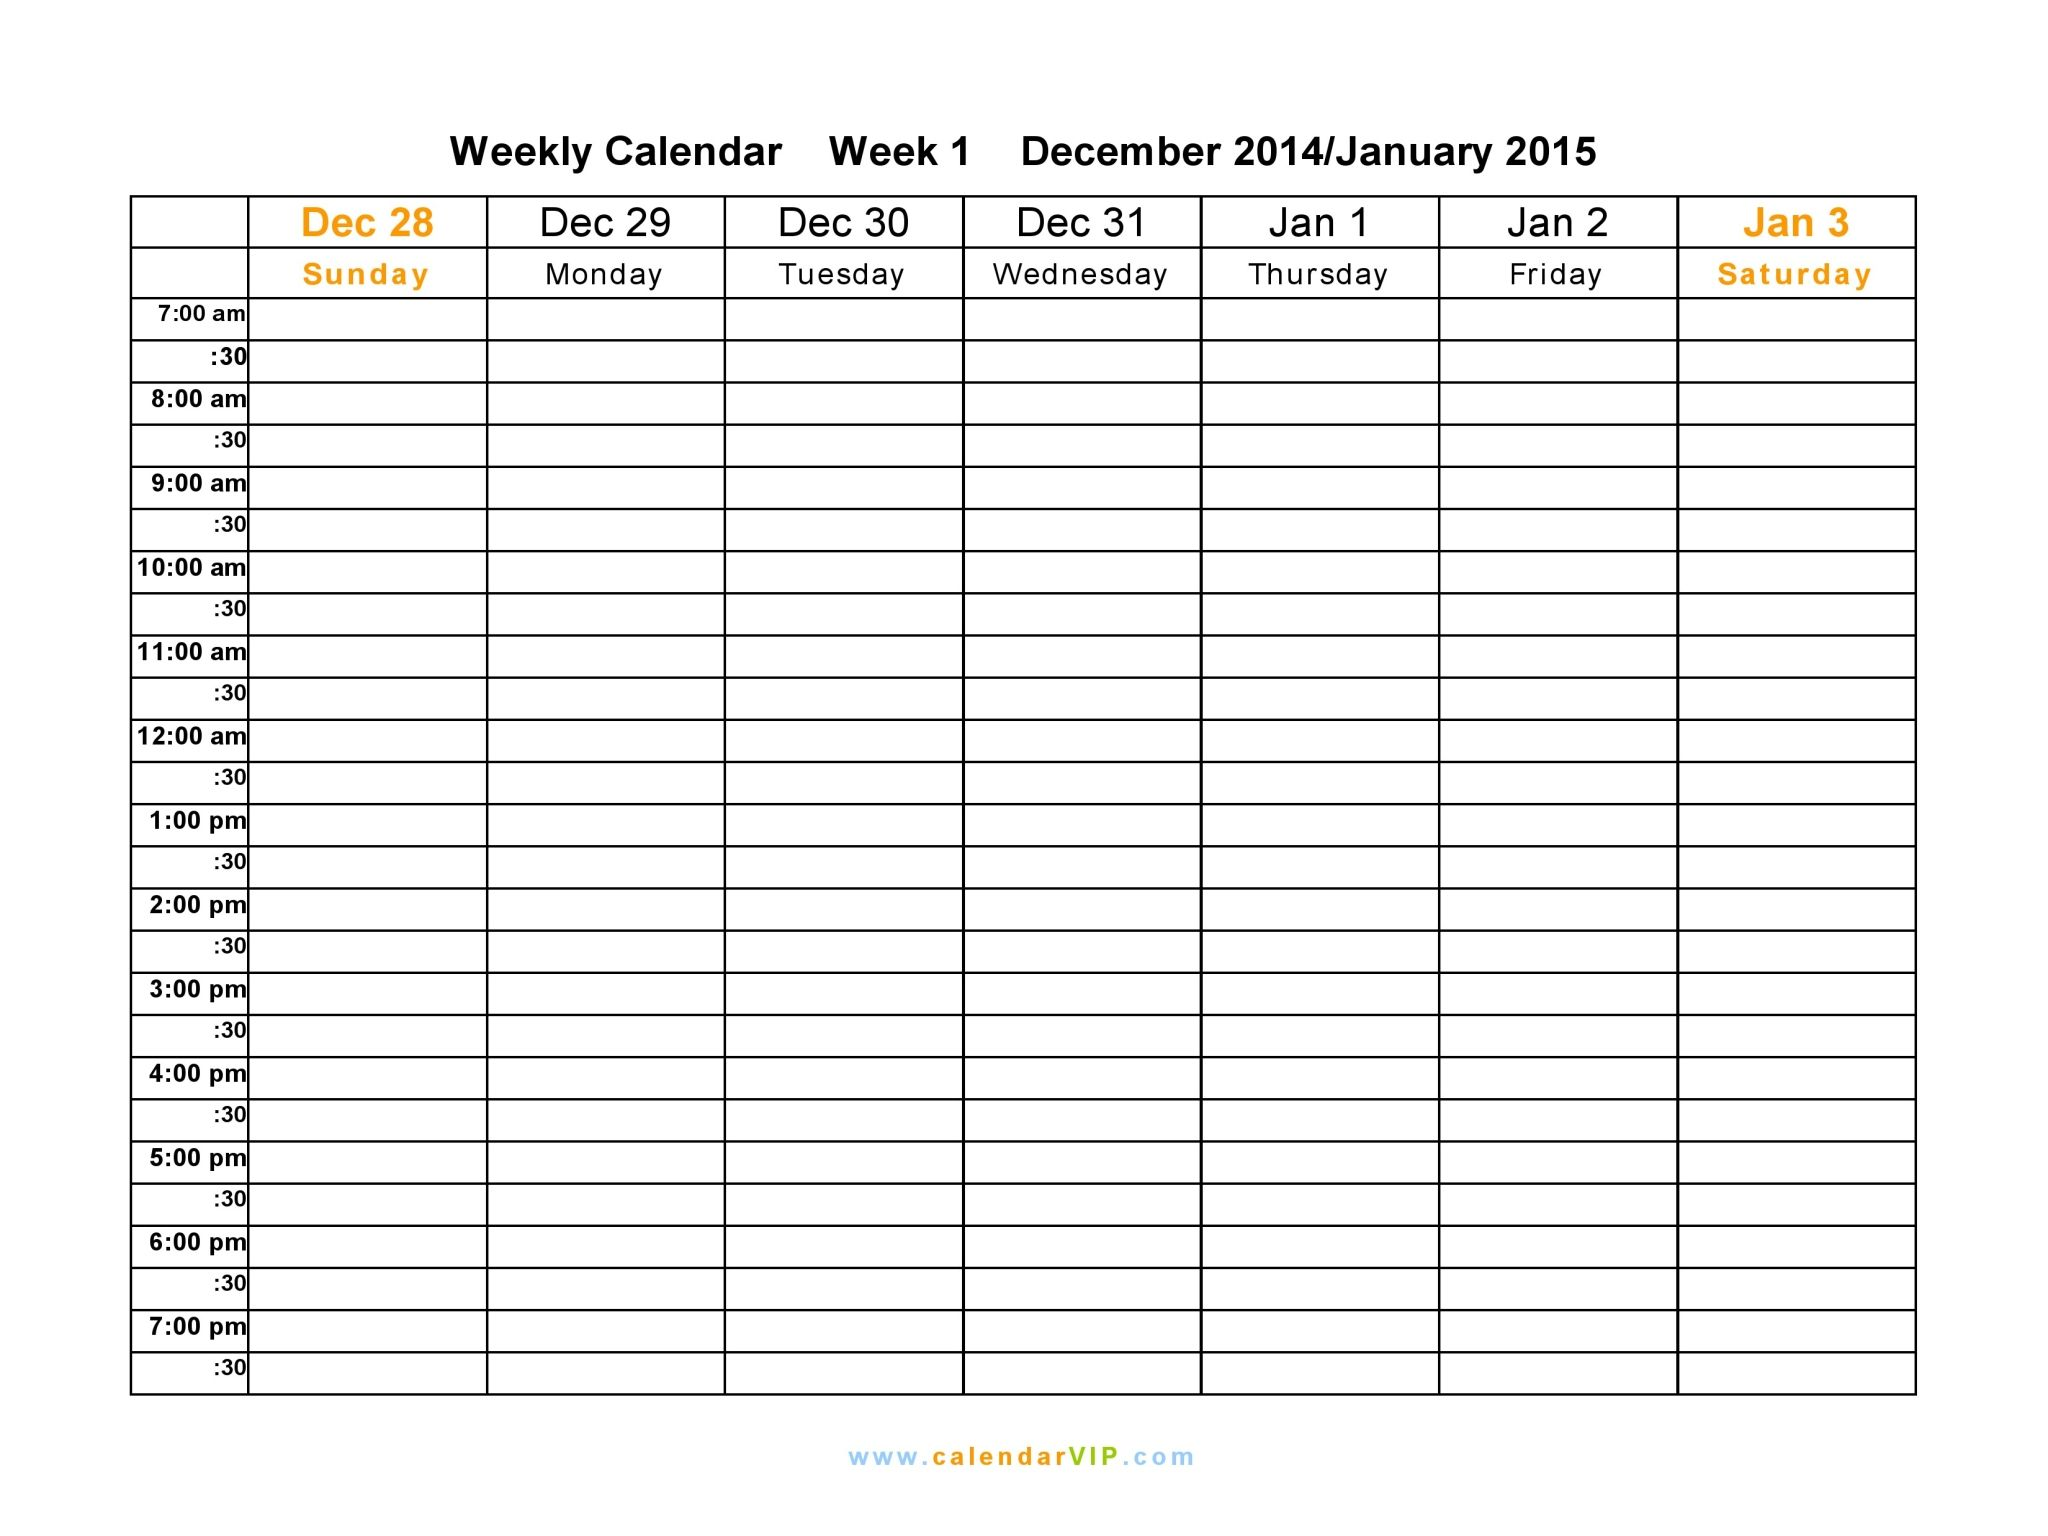 Free Printable Weekly Calendar Templates 2015 | SWE | Pinterest ...